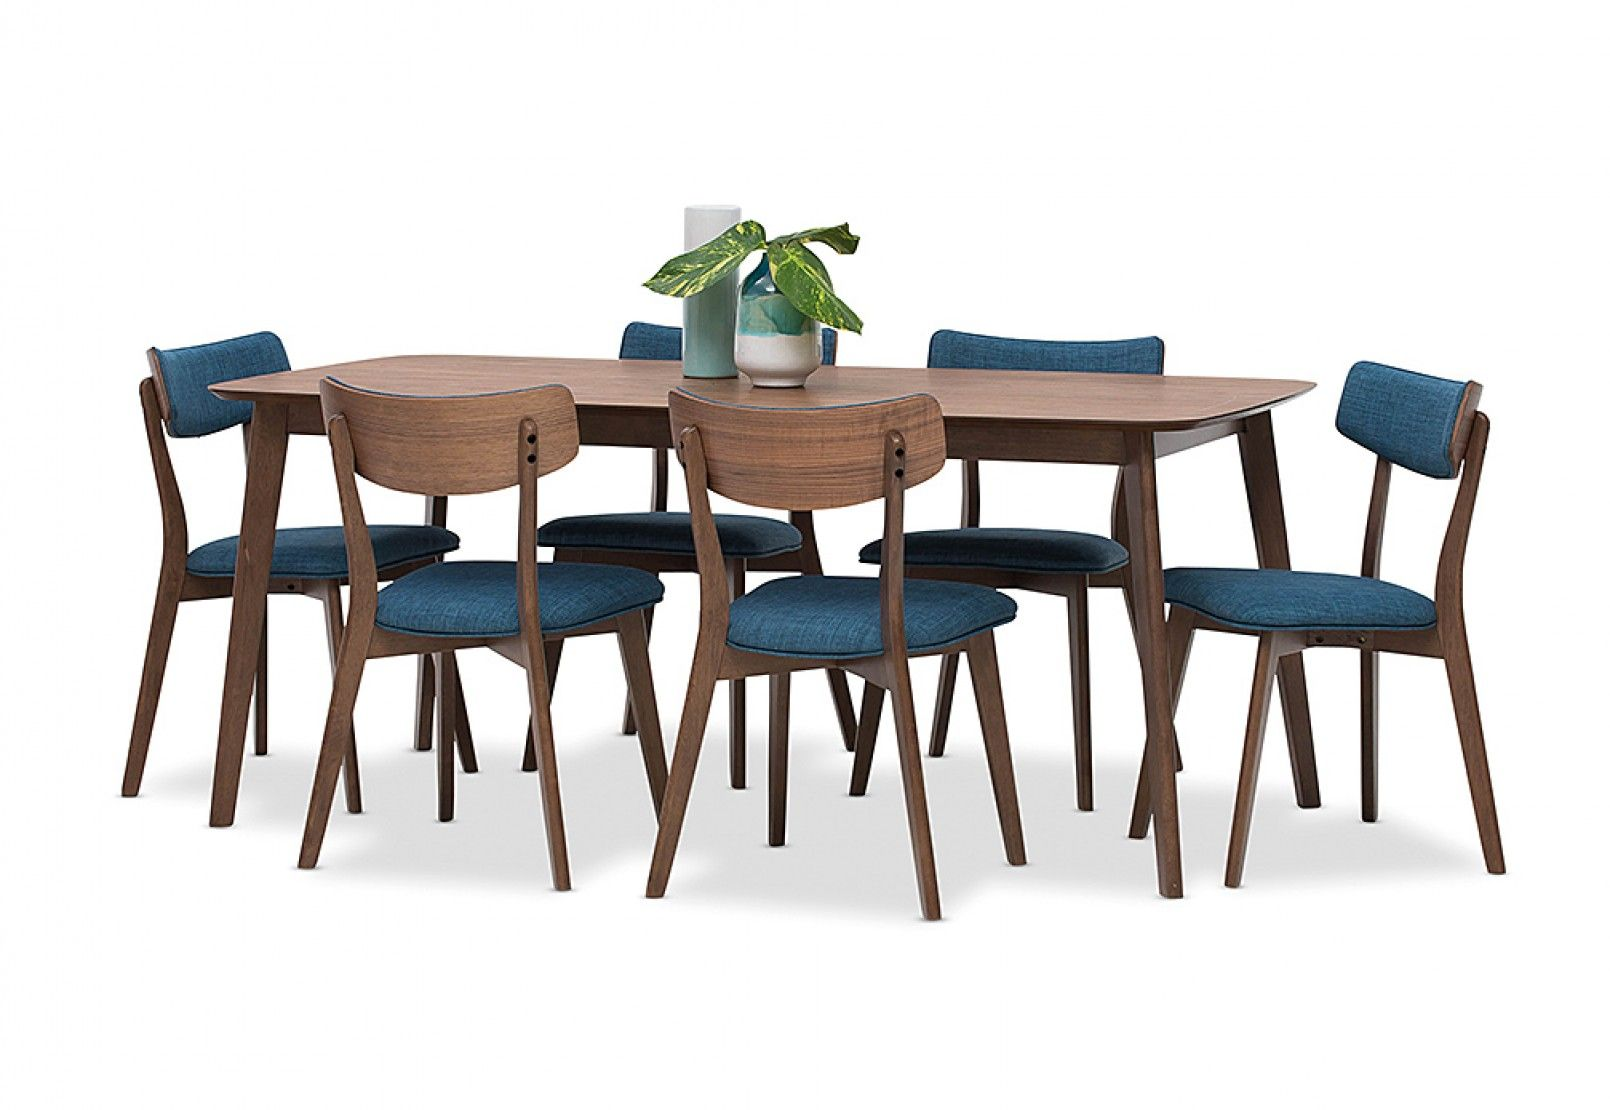 Elsa 7 Piece Dining Room Suite | Super A-Mart | Kitchen/Dining Room ...